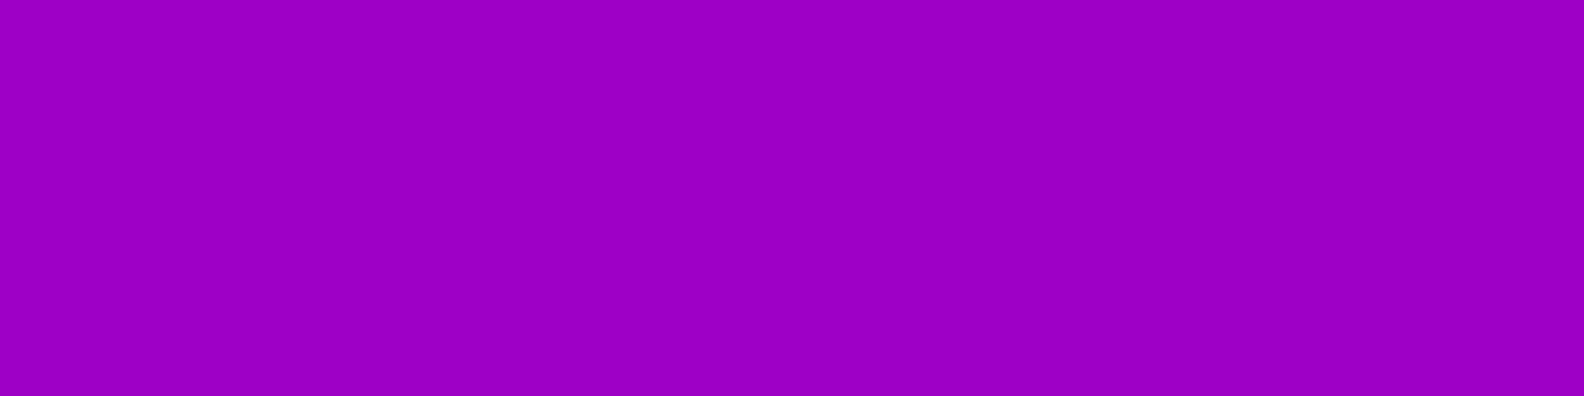 1584x396 Purple Munsell Solid Color Background